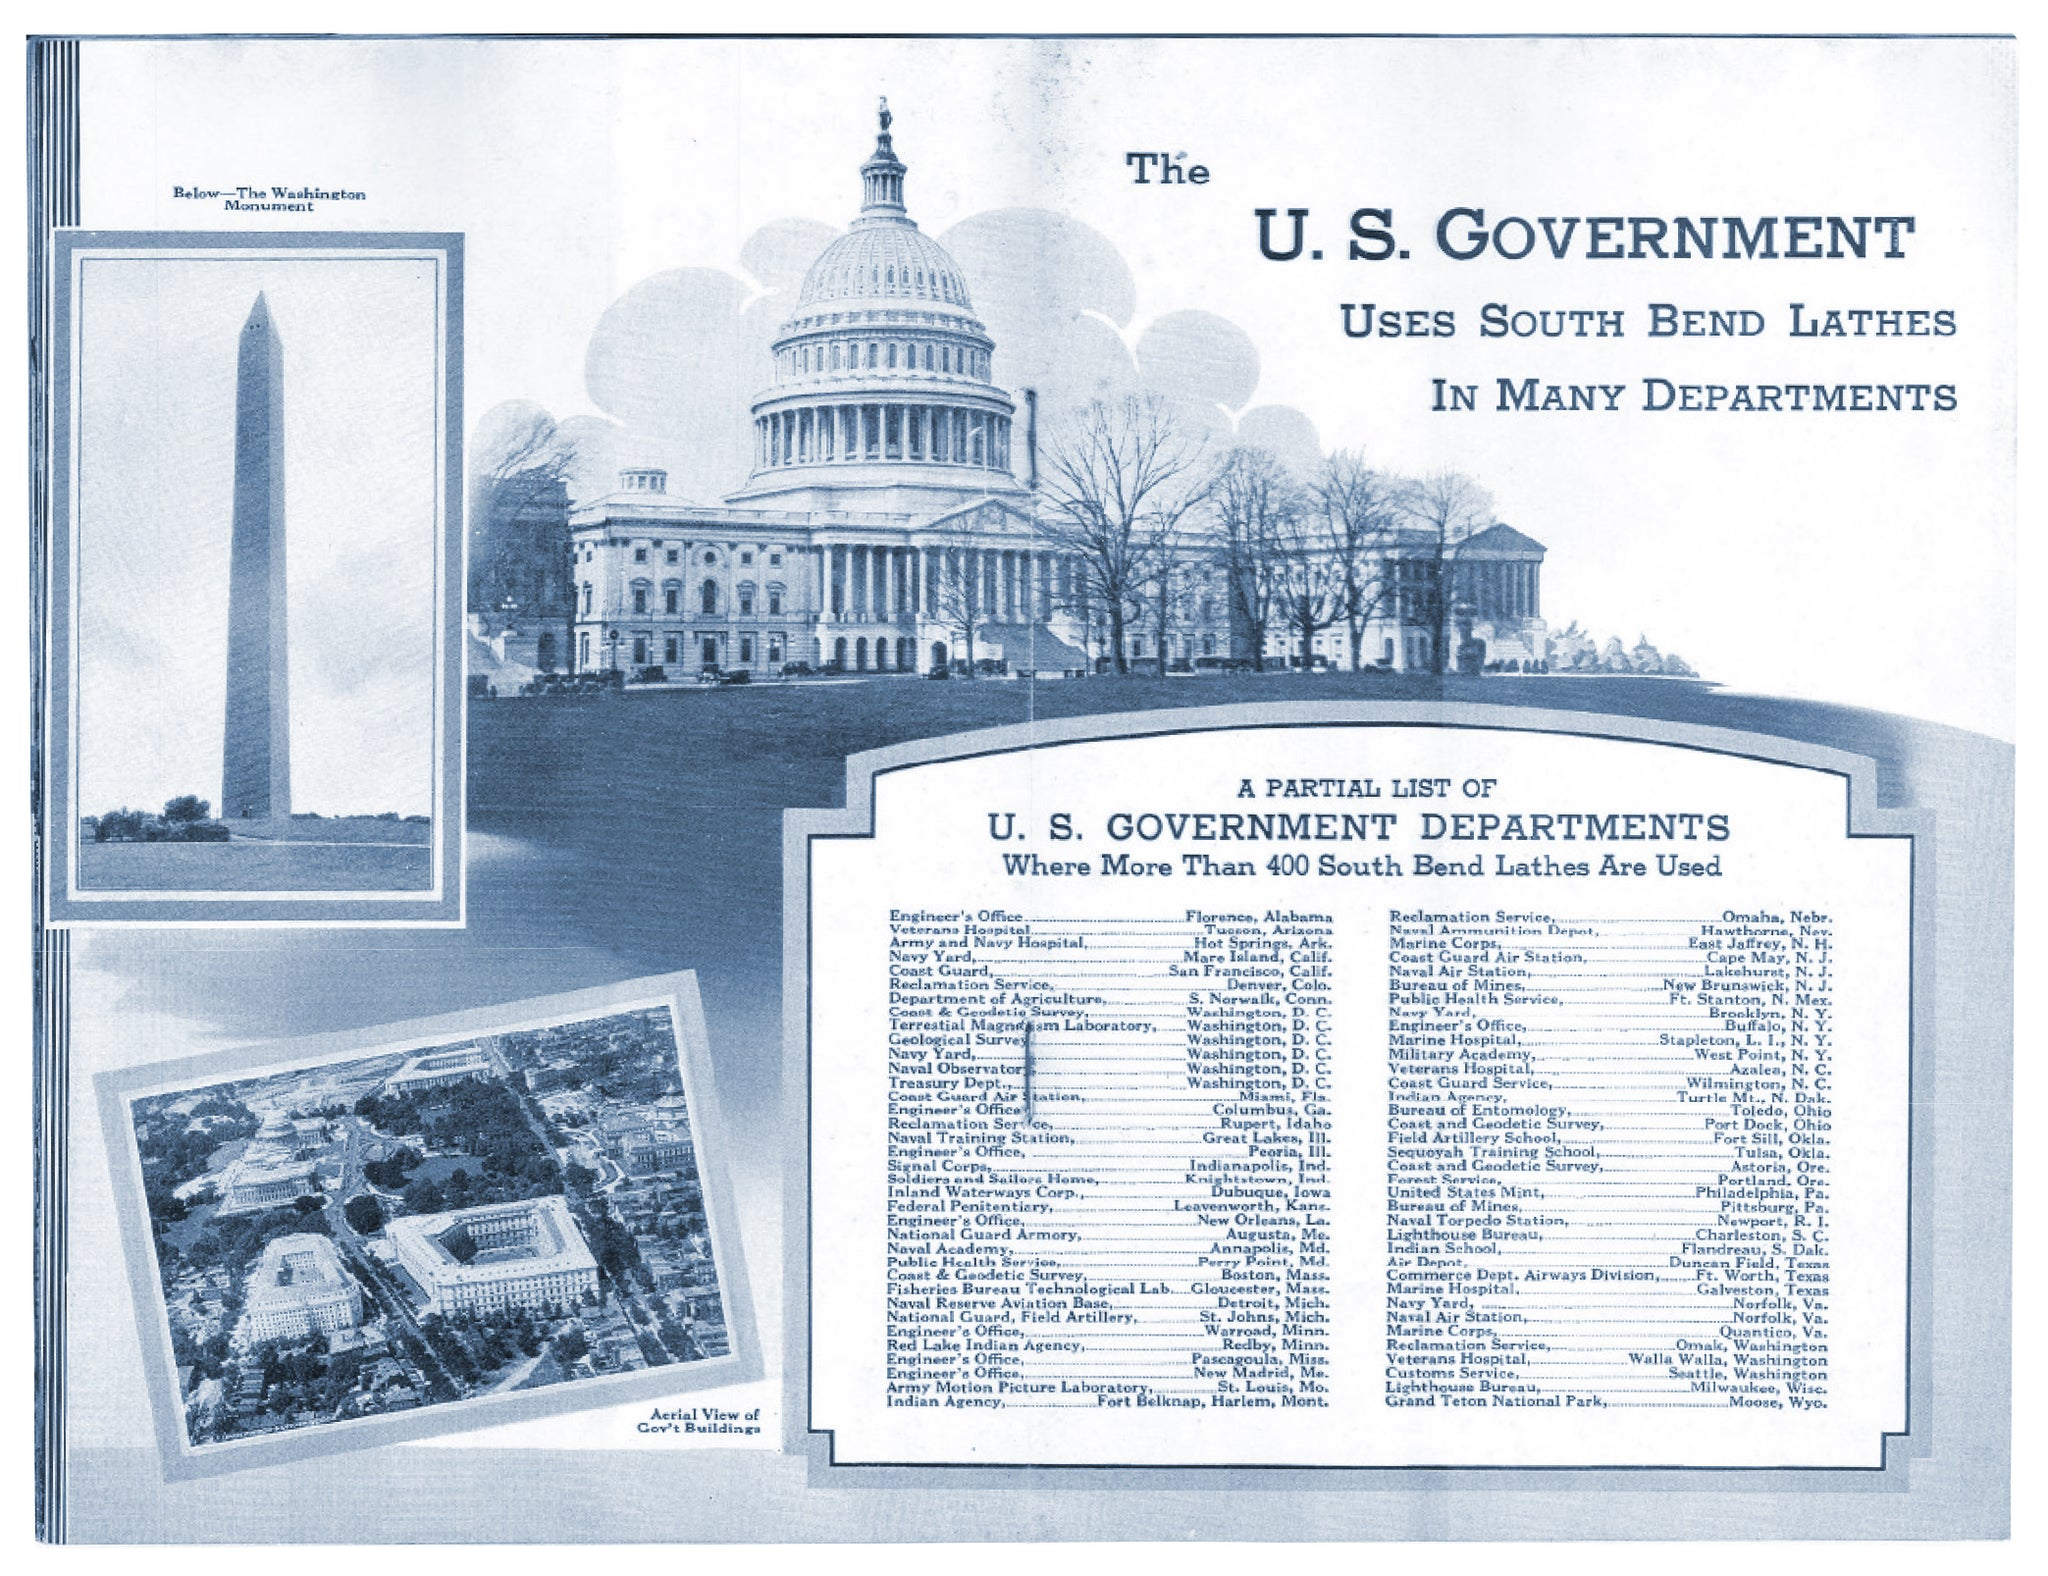 Two page spread on government departments using South Bend from 1935 - Interesting Installations of South Bend Lathes